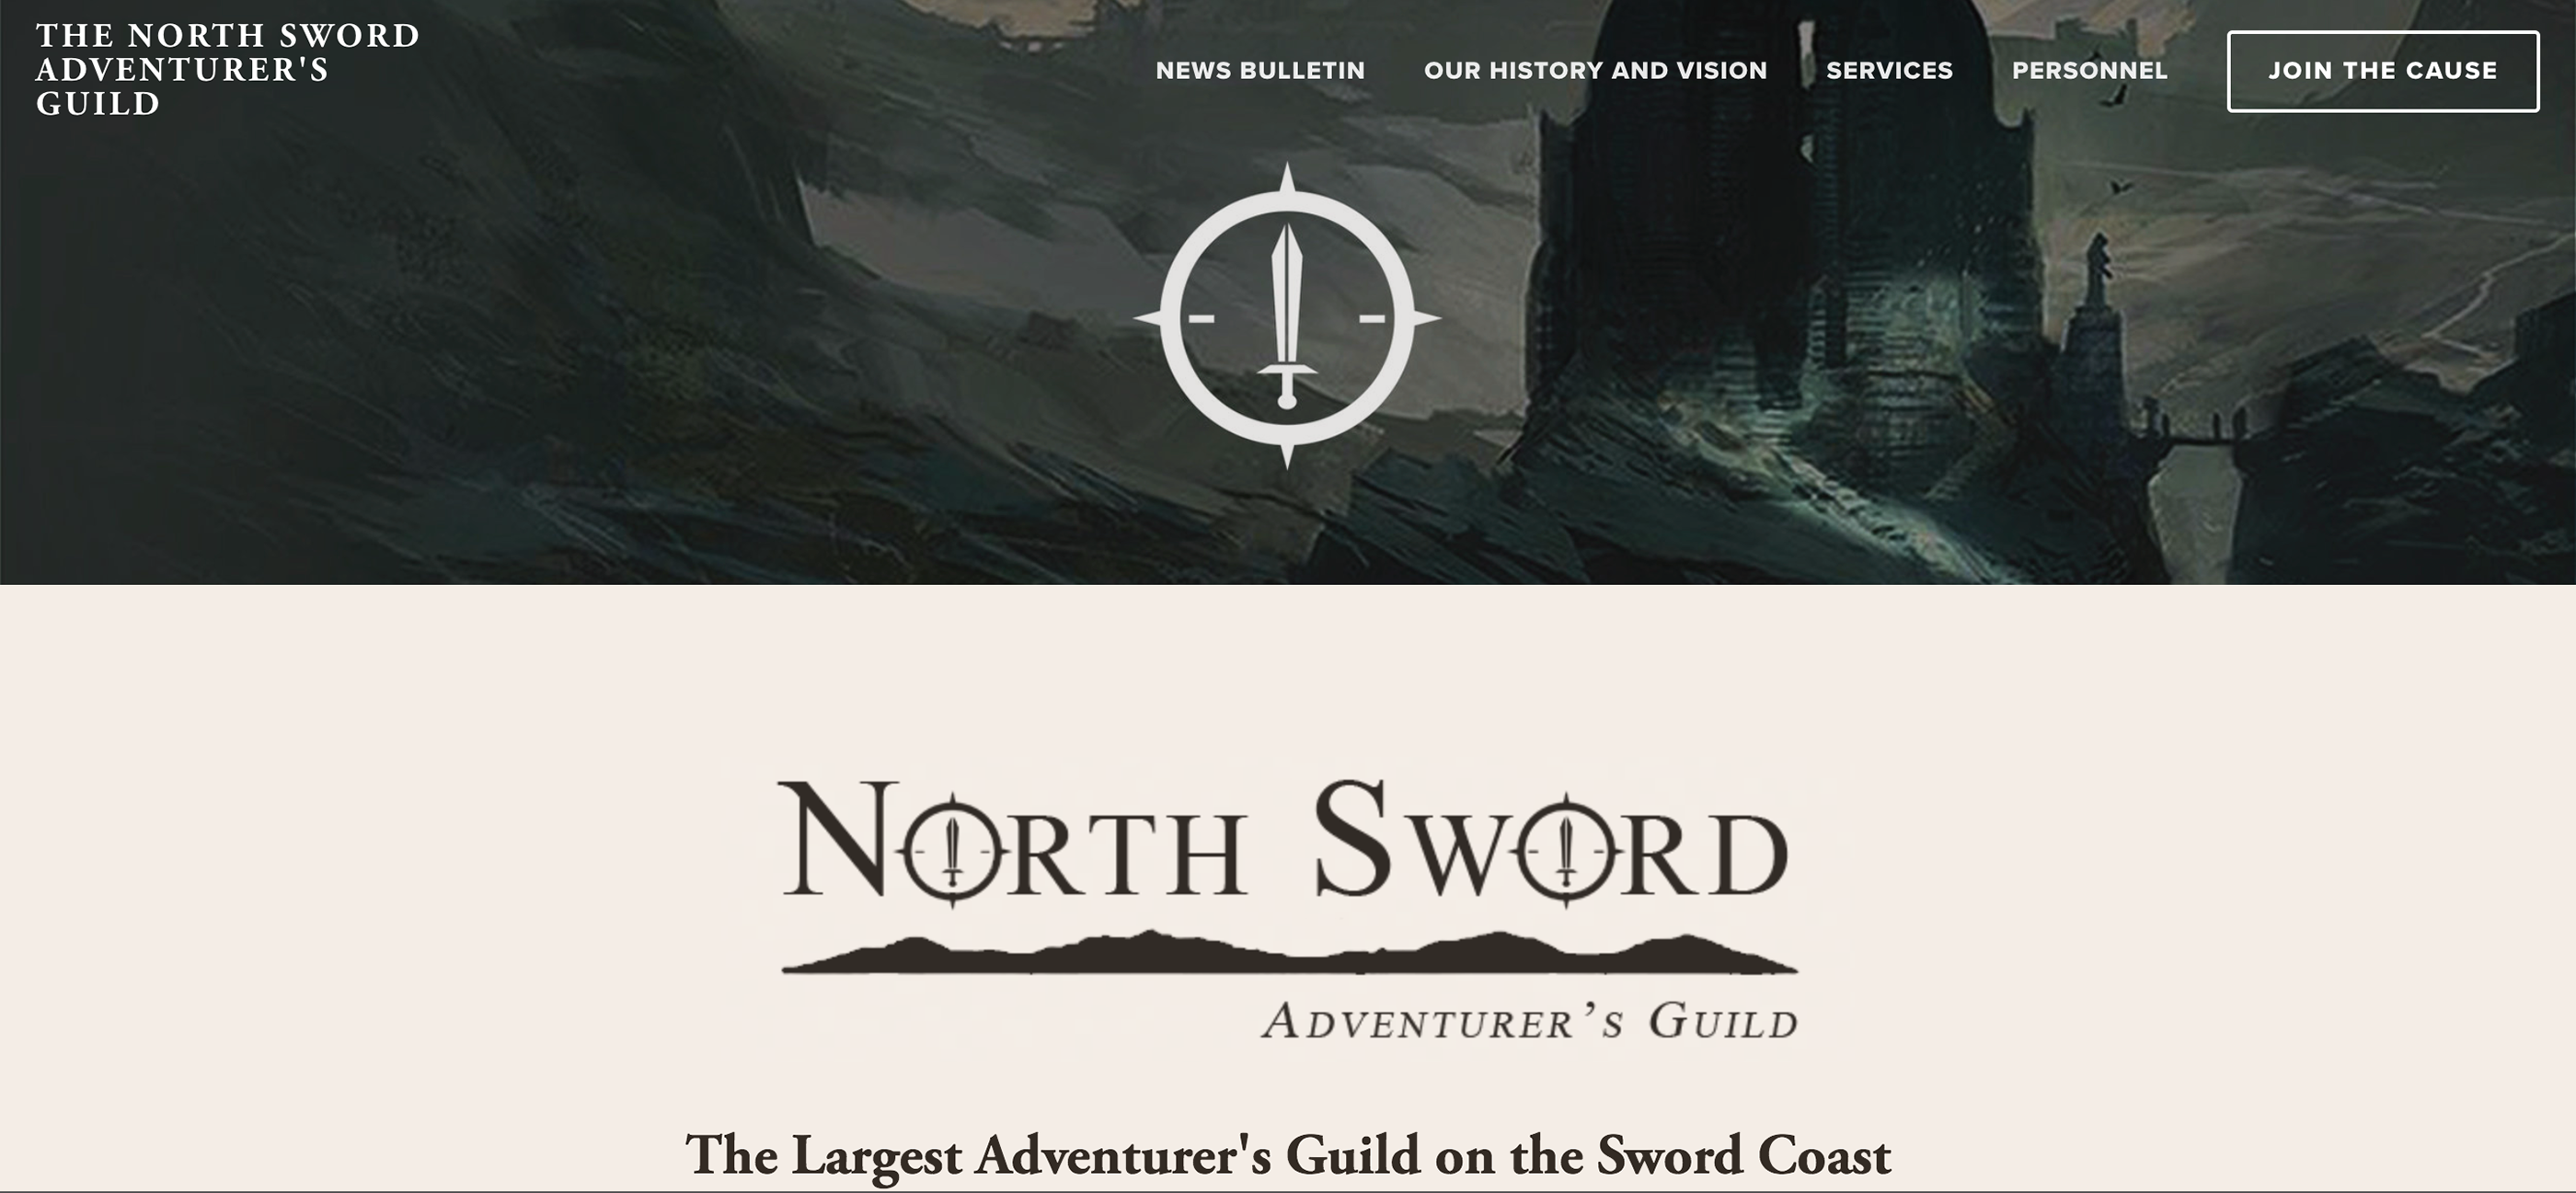 The North Sword: Adventurer's Guild Branding on Behance